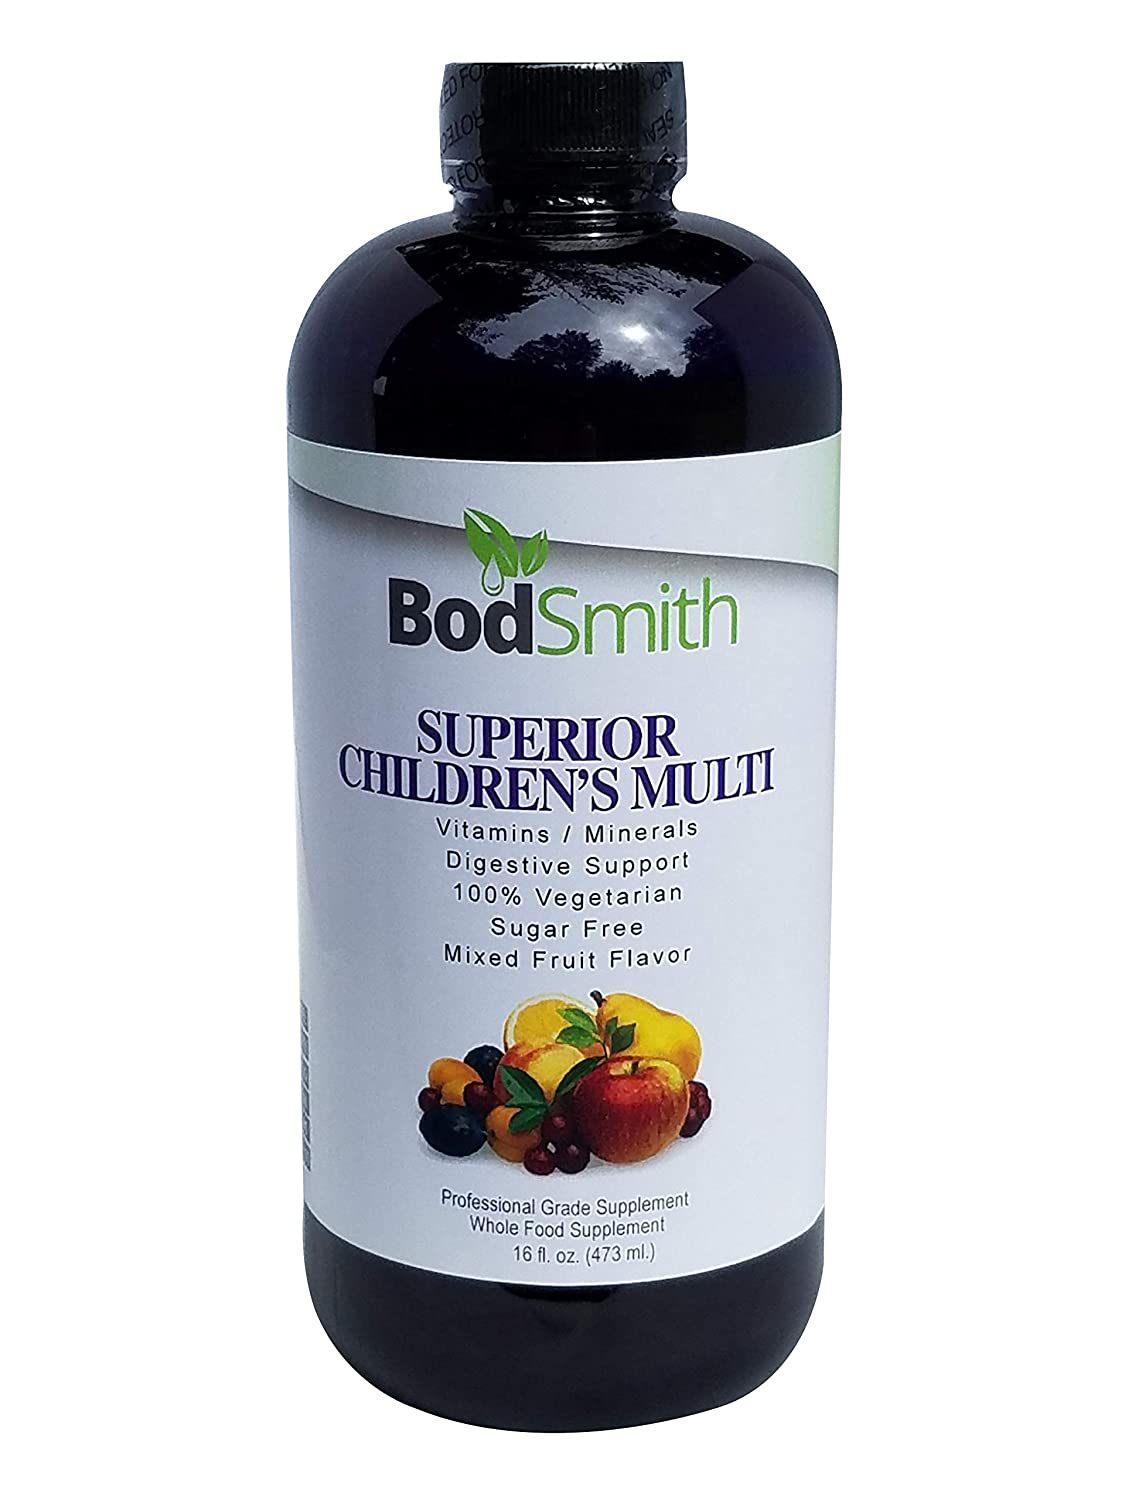 BodSmith Superior Children s Multi is a Professional Grade Liquid Whole Food Daily Supplement Immune Booster for Toddlers Kids All Natural Organic Ingredients